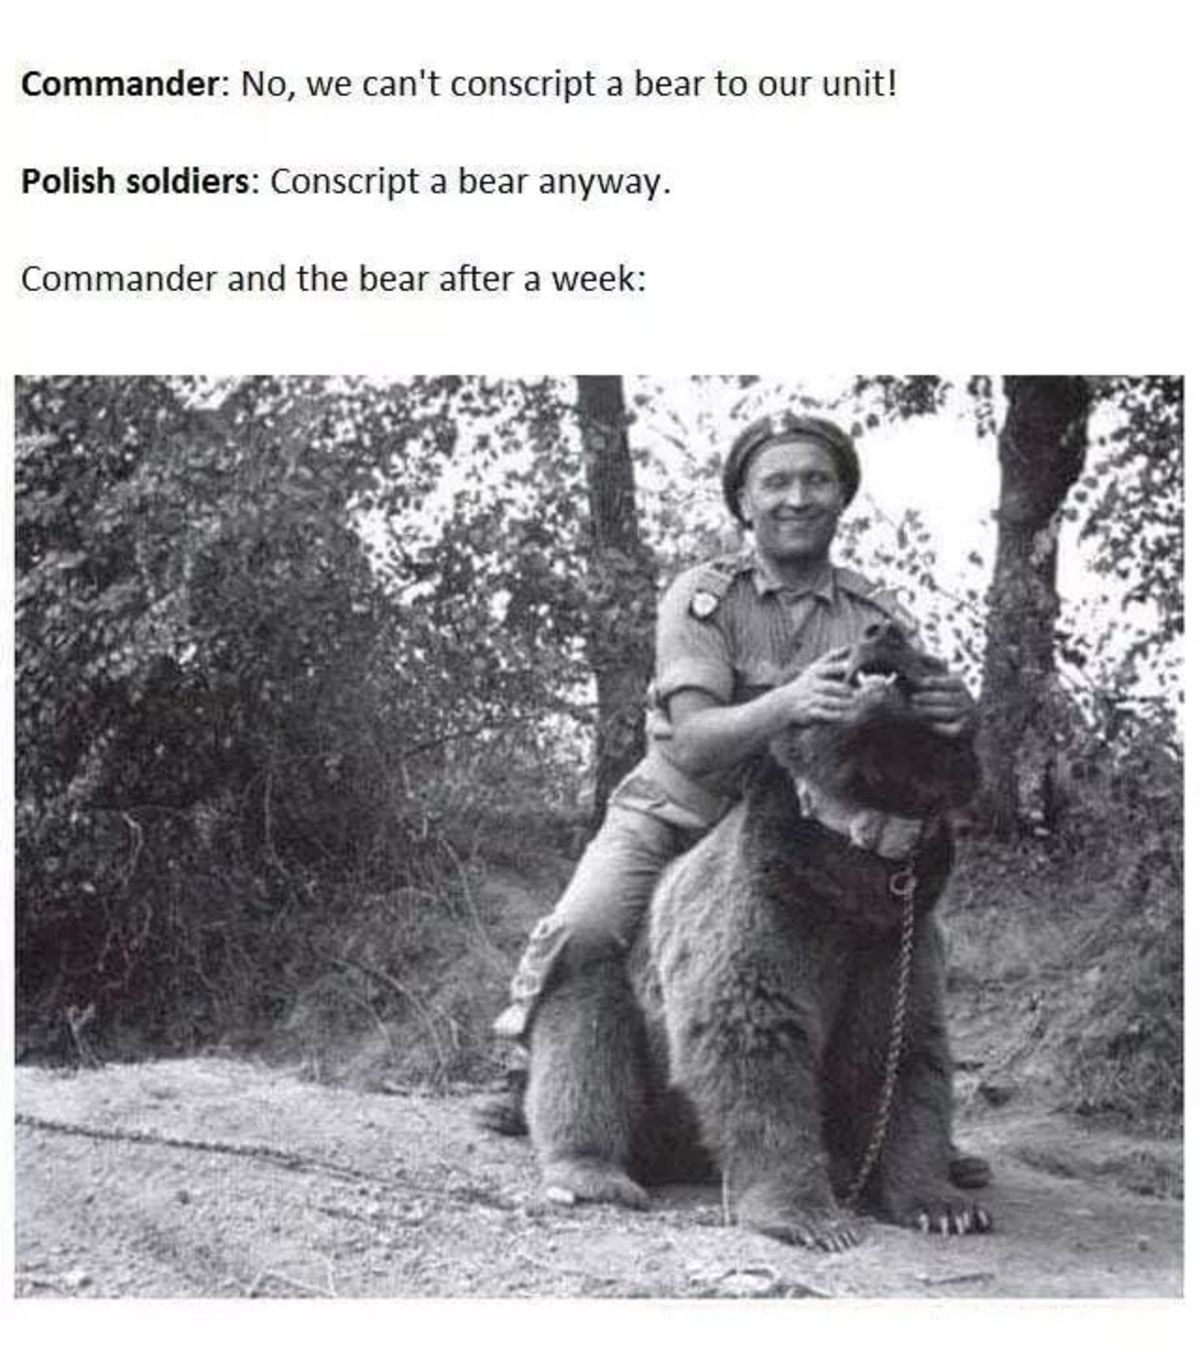 agonizing jazzy Monkey. .. That bear was a badass. He carried 100 pound boxes of artillery shells by himself which would usually take 4 men. He ate cigarettes, drank and even play fought